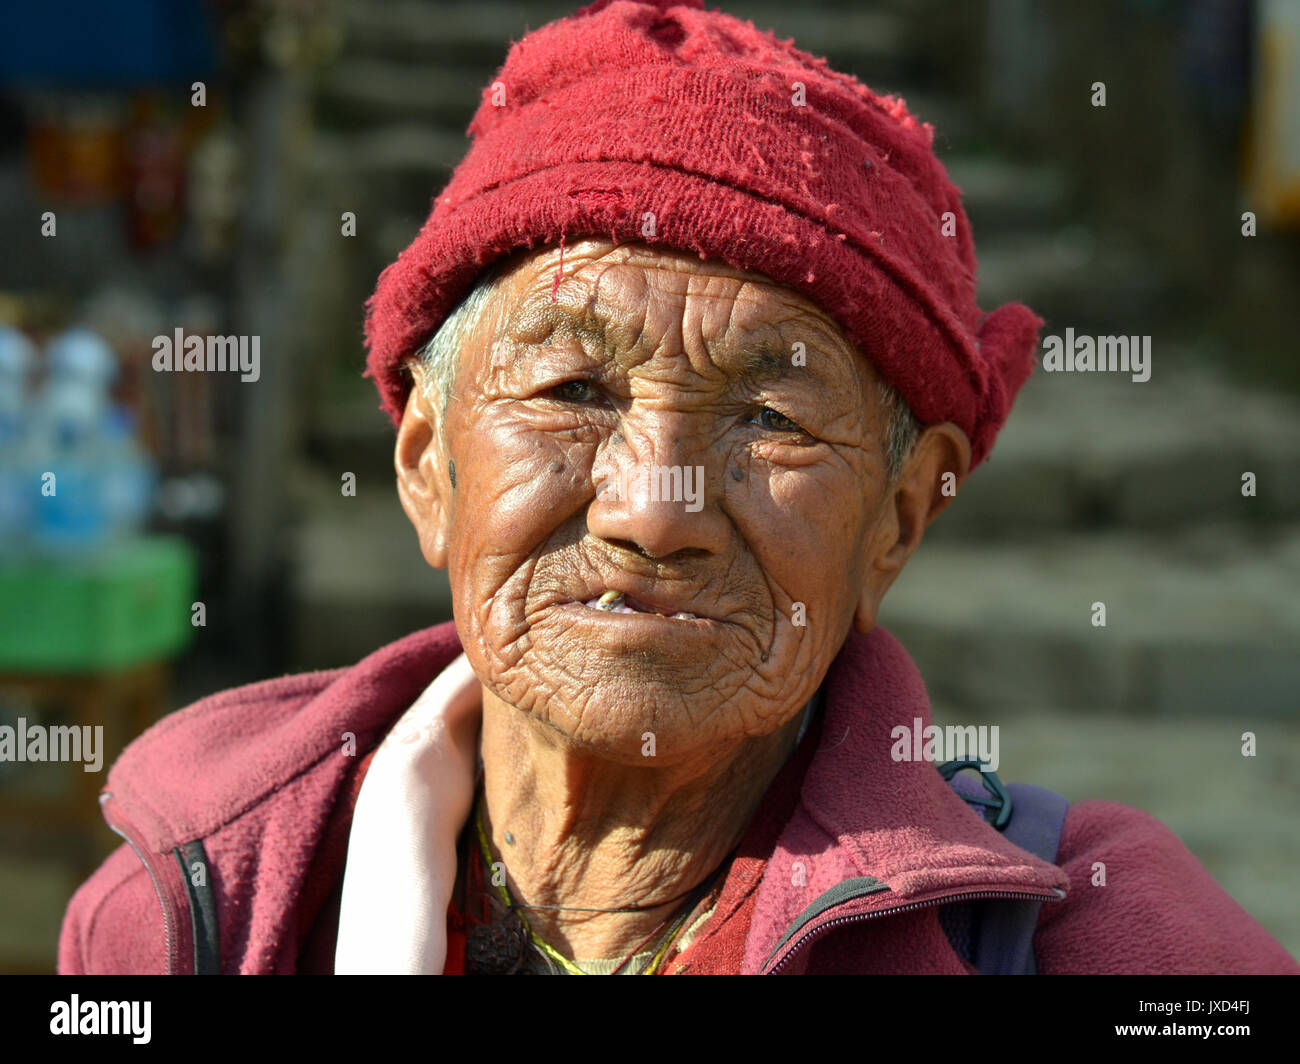 Closeup street portrait (outdoor headshot, full-face view) of an old Tibetan Buddhist nun from the Himalayas; Namche Stock Photo